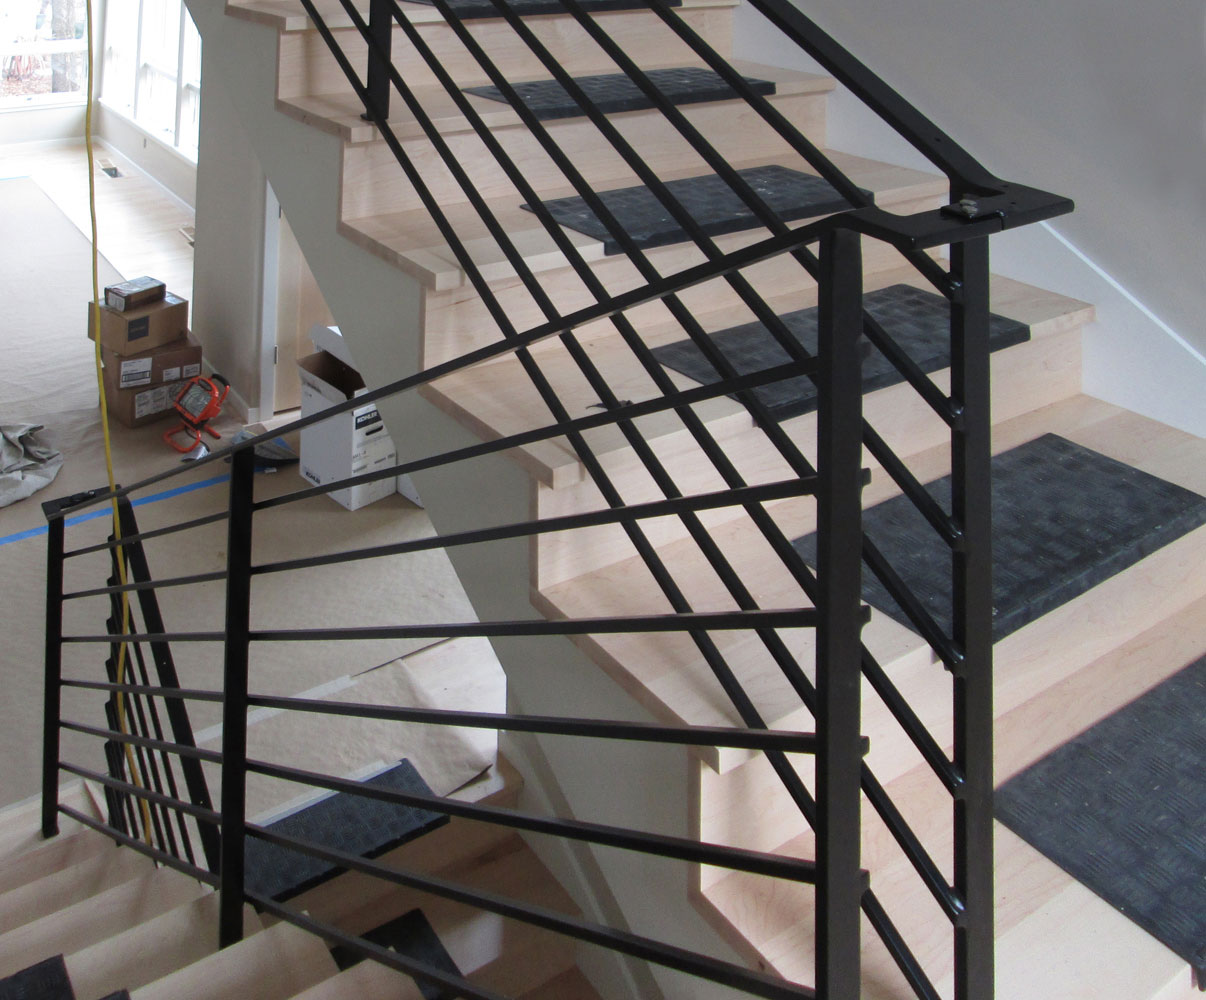 intrailings rails hand ma ri staircases htm spiral staircase railings iron ornamental interior wrought